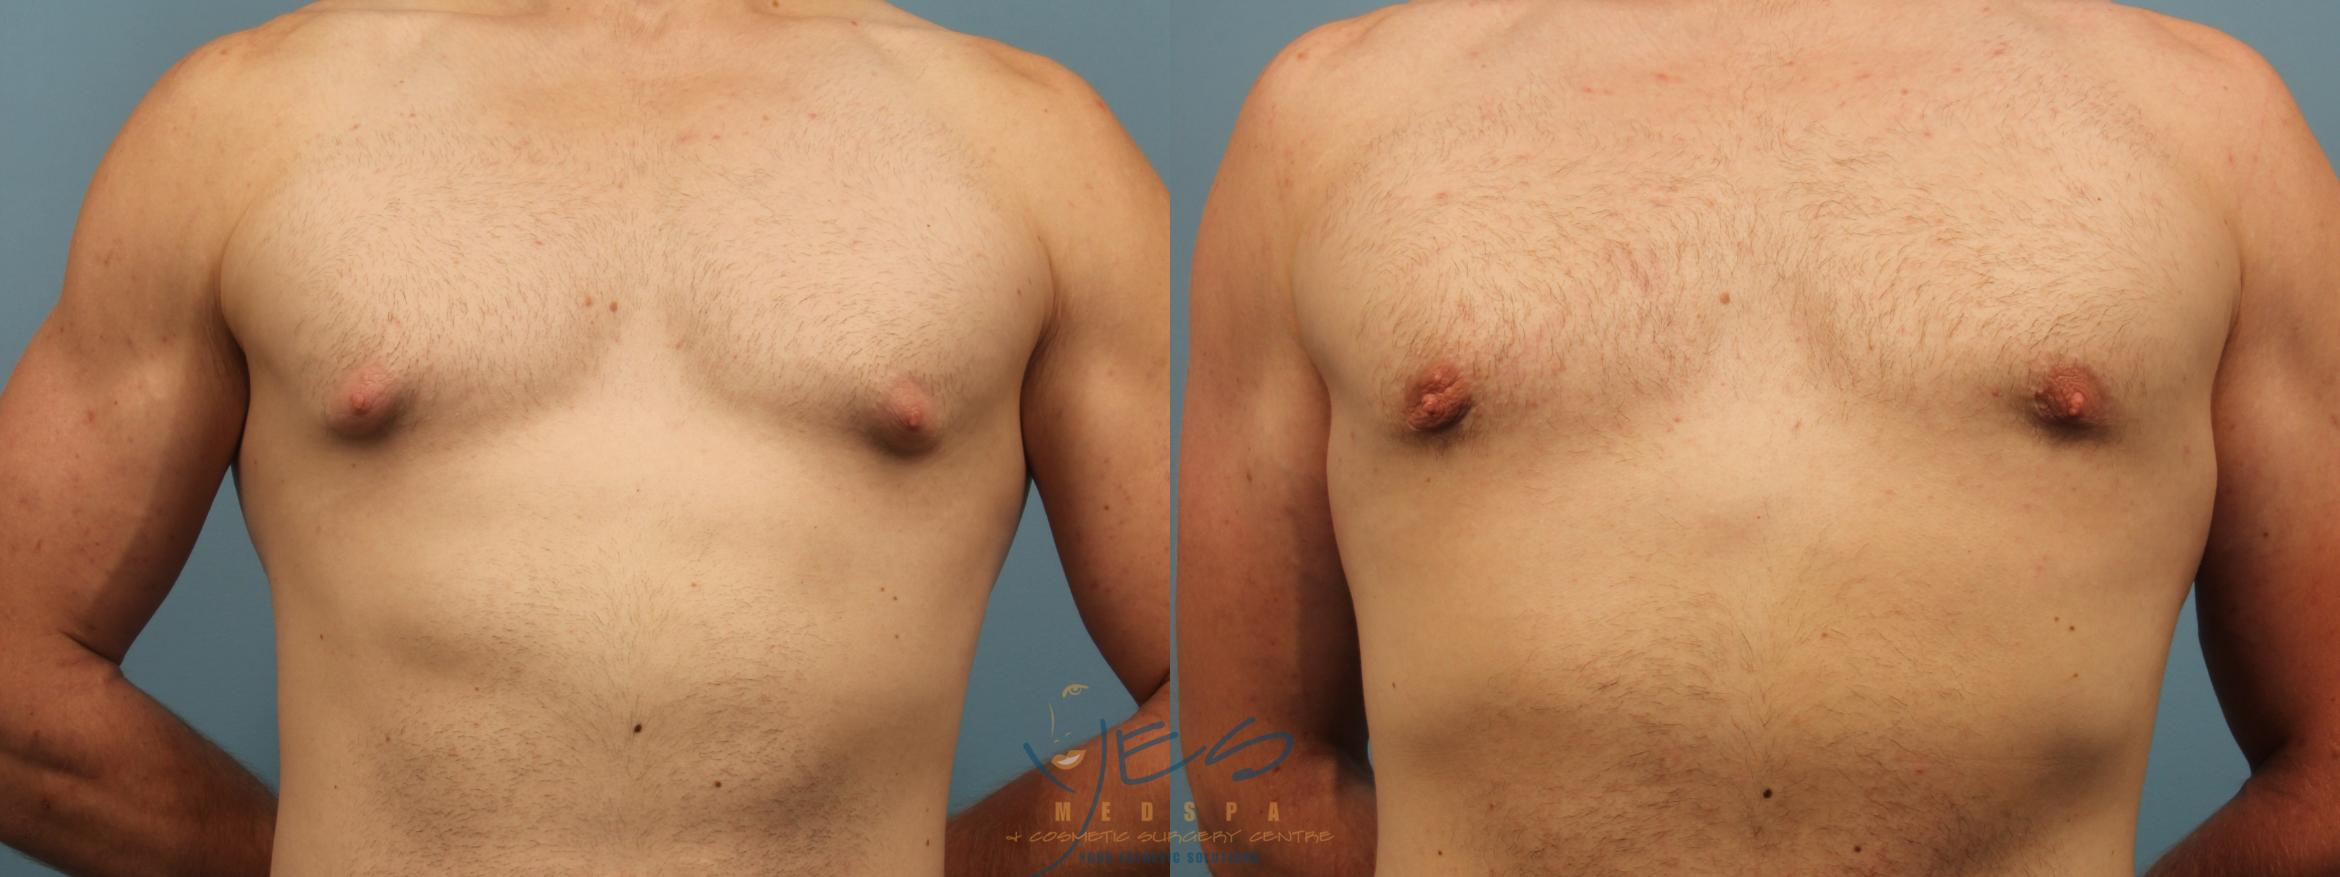 Male Breast Reduction Case 303 Before & After Front | Vancouver, BC | YES Medspa & Cosmetic Surgery Centre